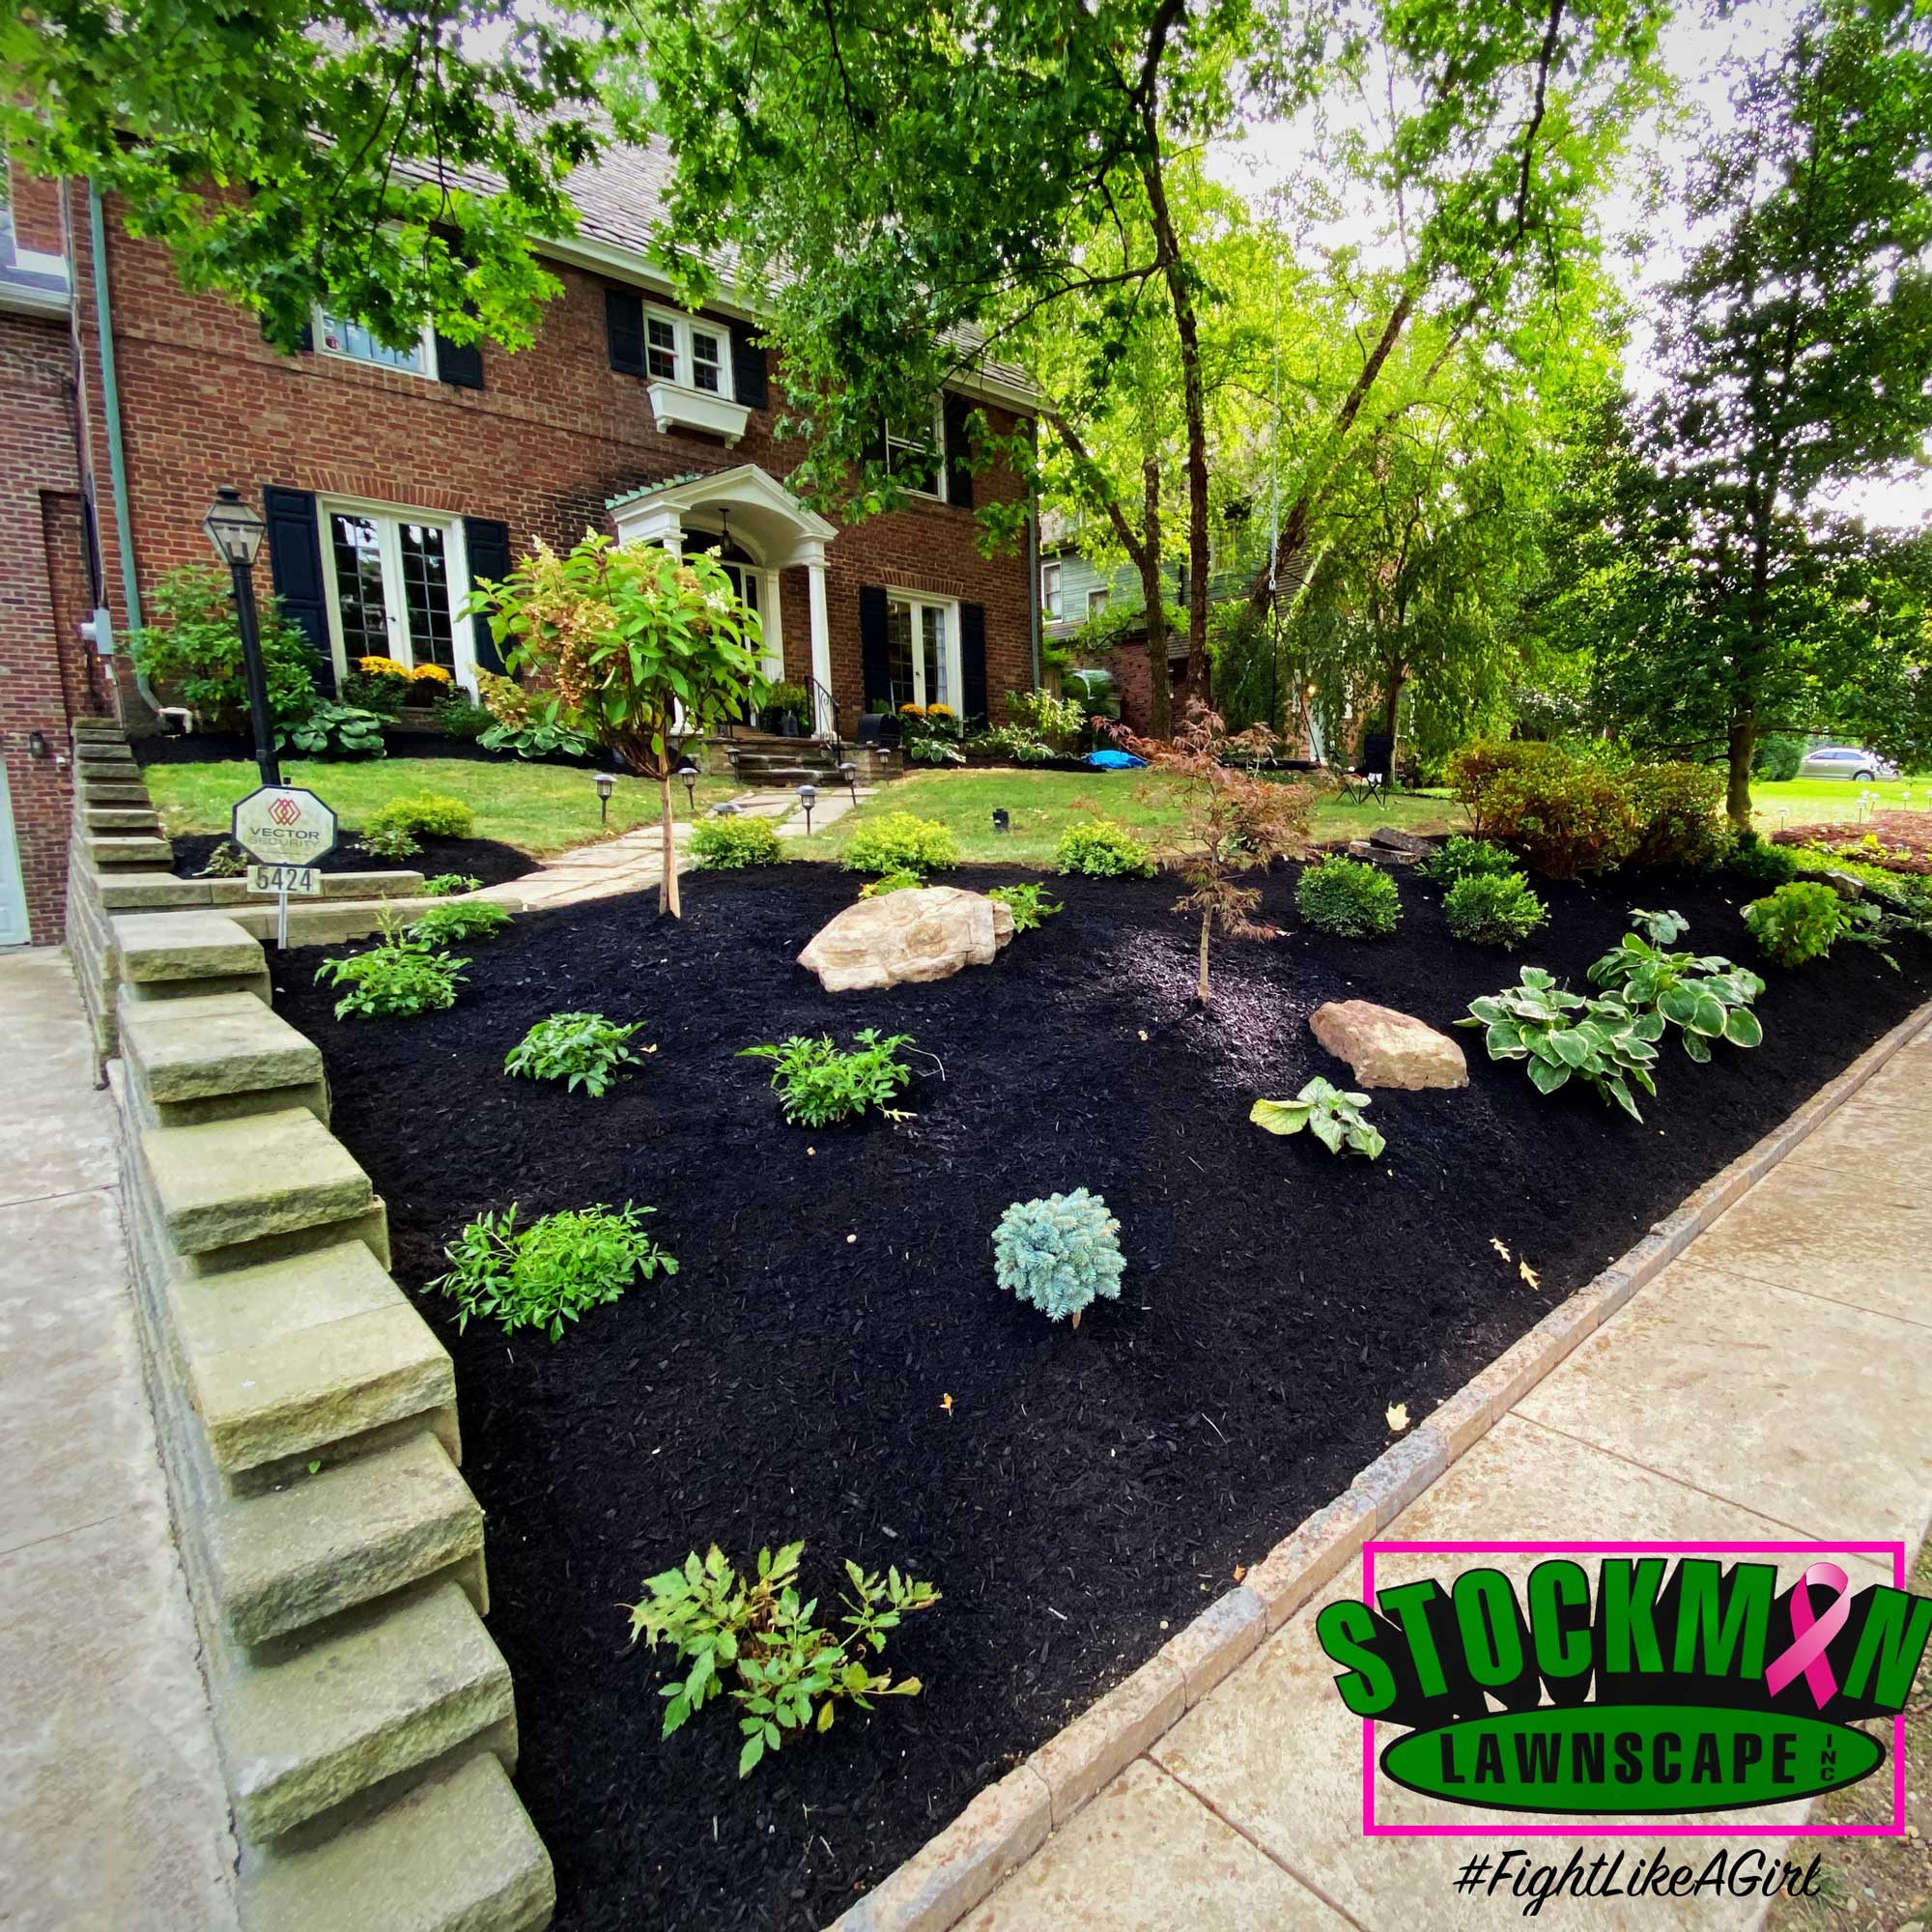 stockman Lawnscape Pittsburgh pa